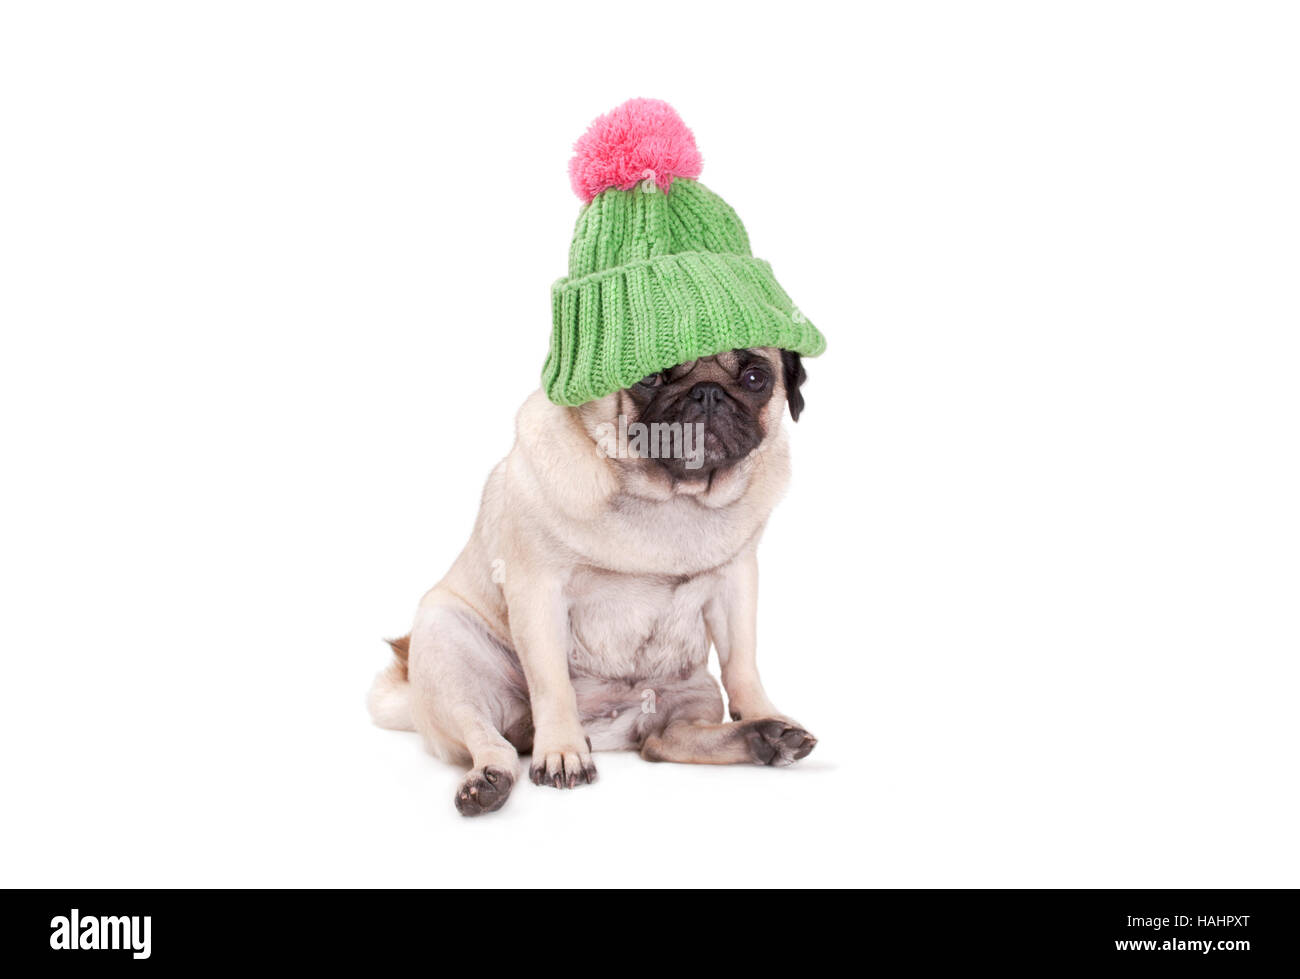 pug puppy dog sitting down and wearing green kniited rib stitch hat with pink pompon, on white background - Stock Image